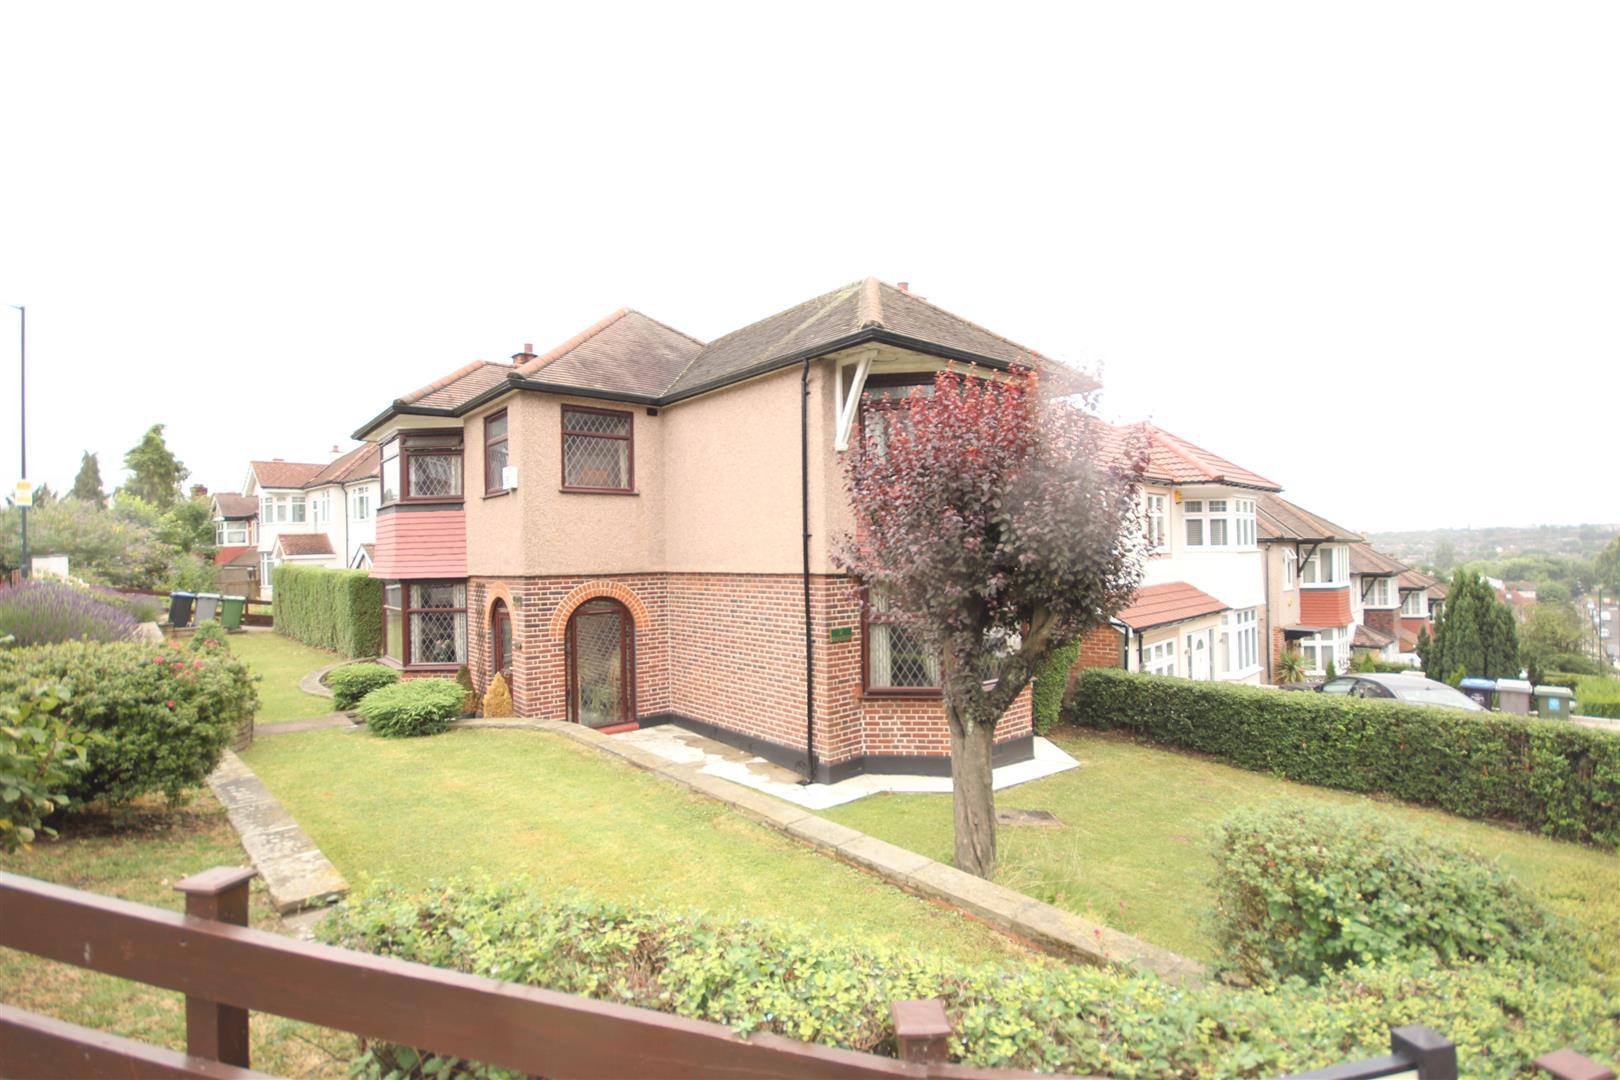 4 Bedrooms Detached House for sale in Parkside, PEN-Y-BRYN, London NW2 6RH